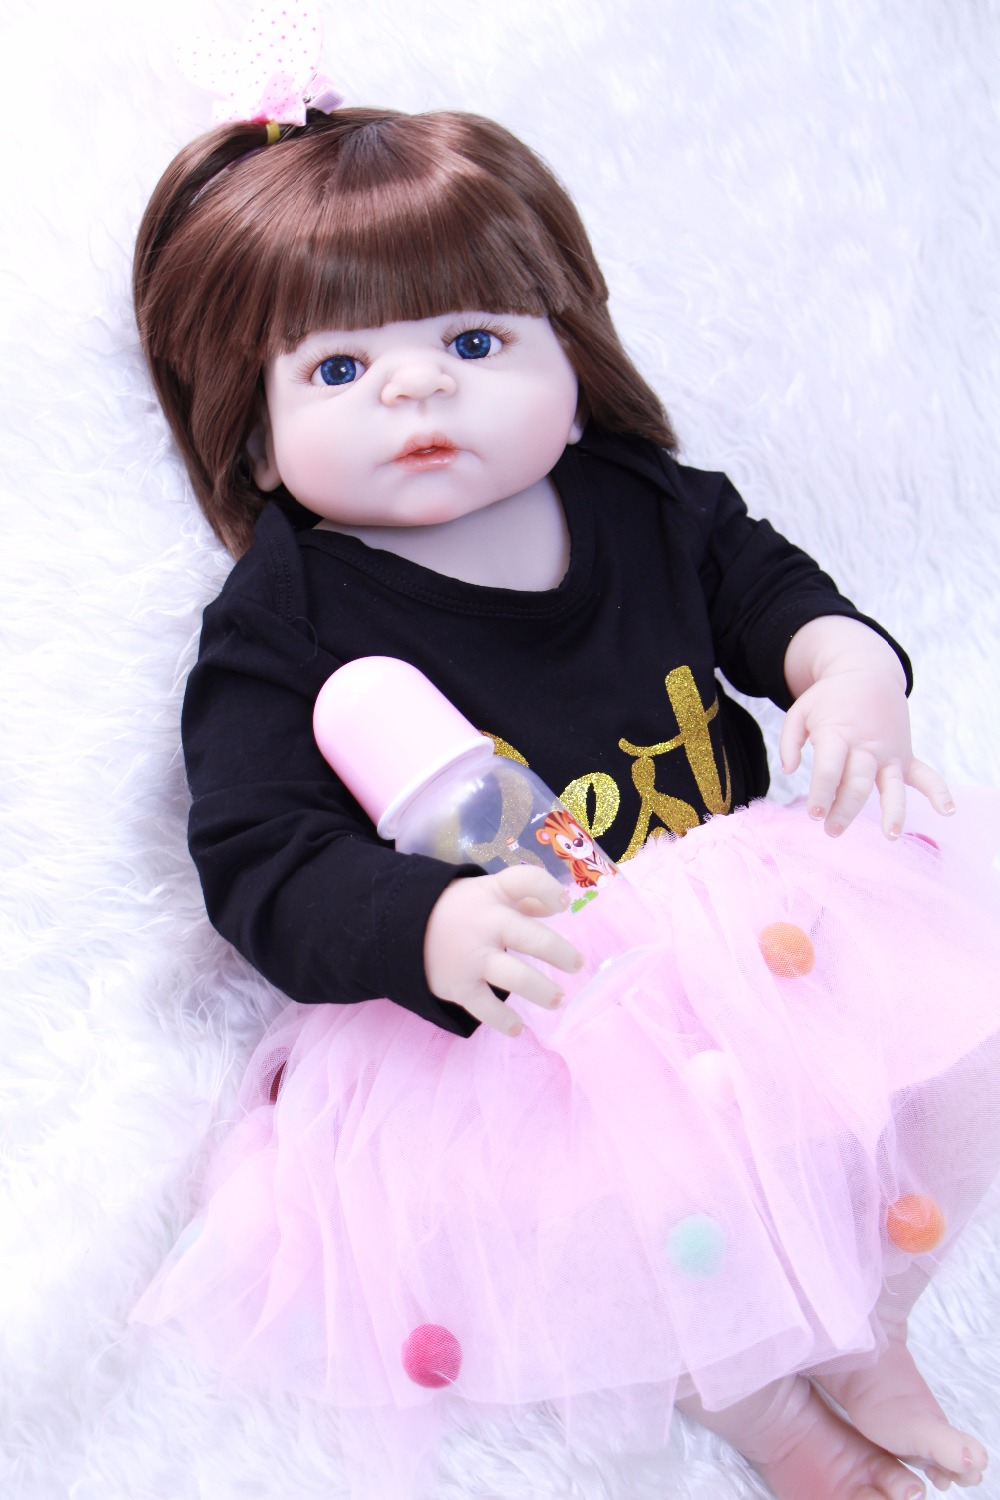 NPK New  Lovely New Born Baby Girl Doll Toy 23 Realistic Reborn Dolls Silicone Vinyl Full Body bebe Alive Boneca RebornsNPK New  Lovely New Born Baby Girl Doll Toy 23 Realistic Reborn Dolls Silicone Vinyl Full Body bebe Alive Boneca Reborns